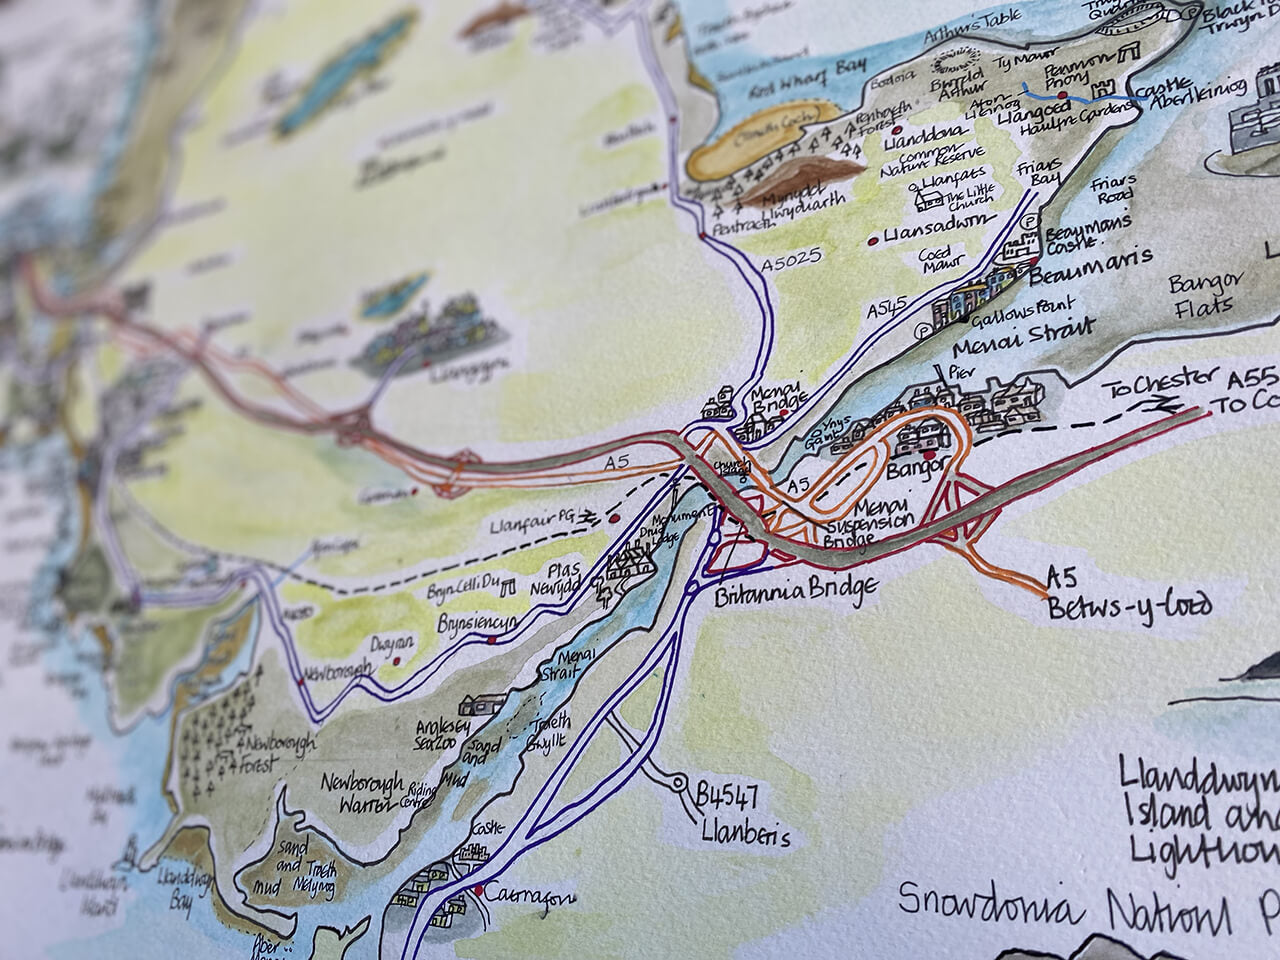 Maps of Anglesey hand drawn